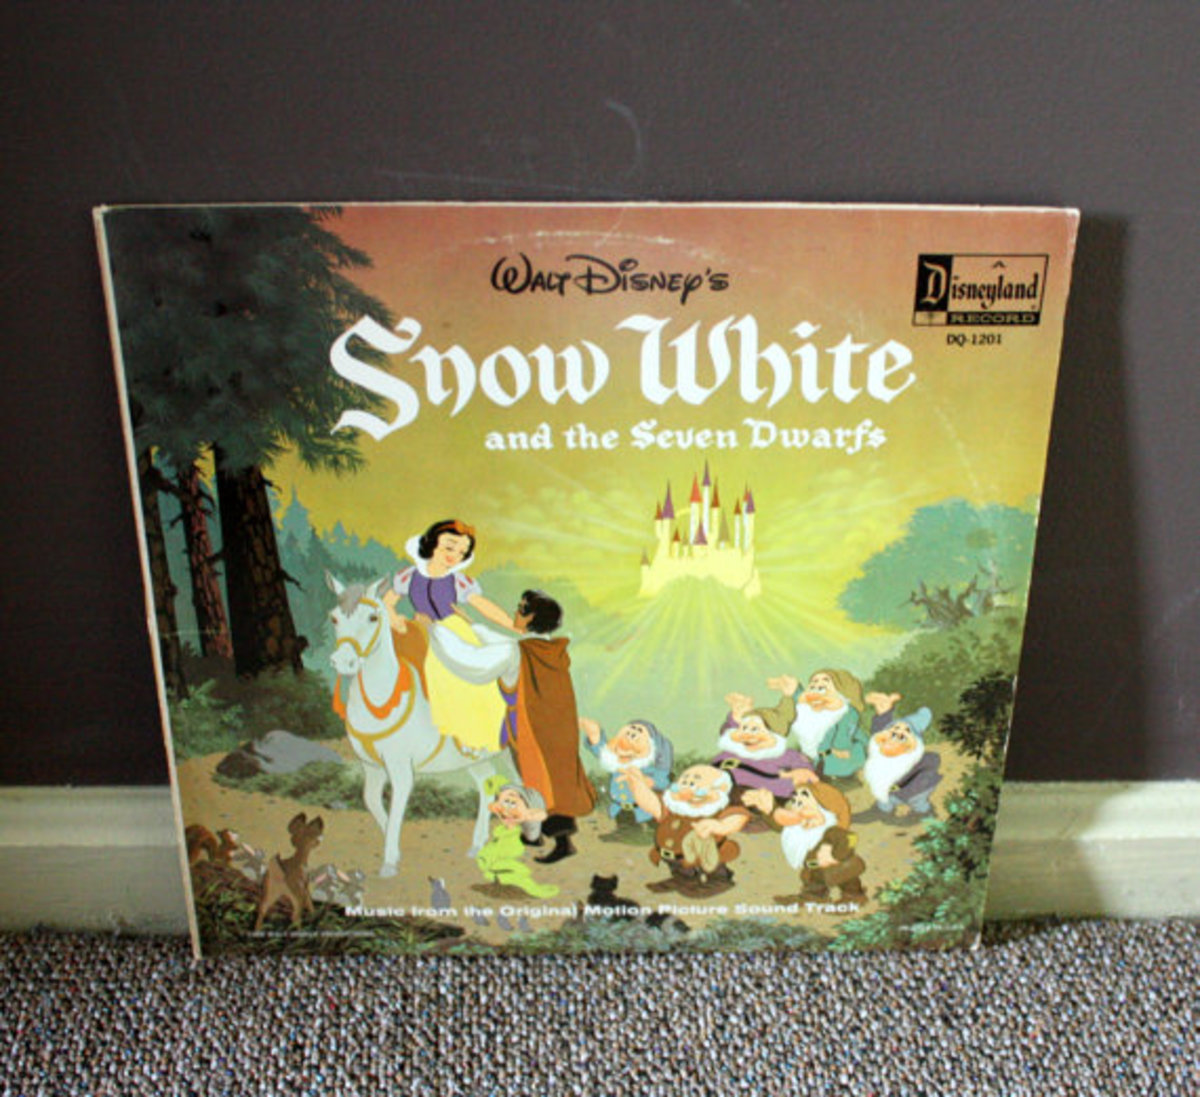 Here is a picture of the soundtrack on vinyl.